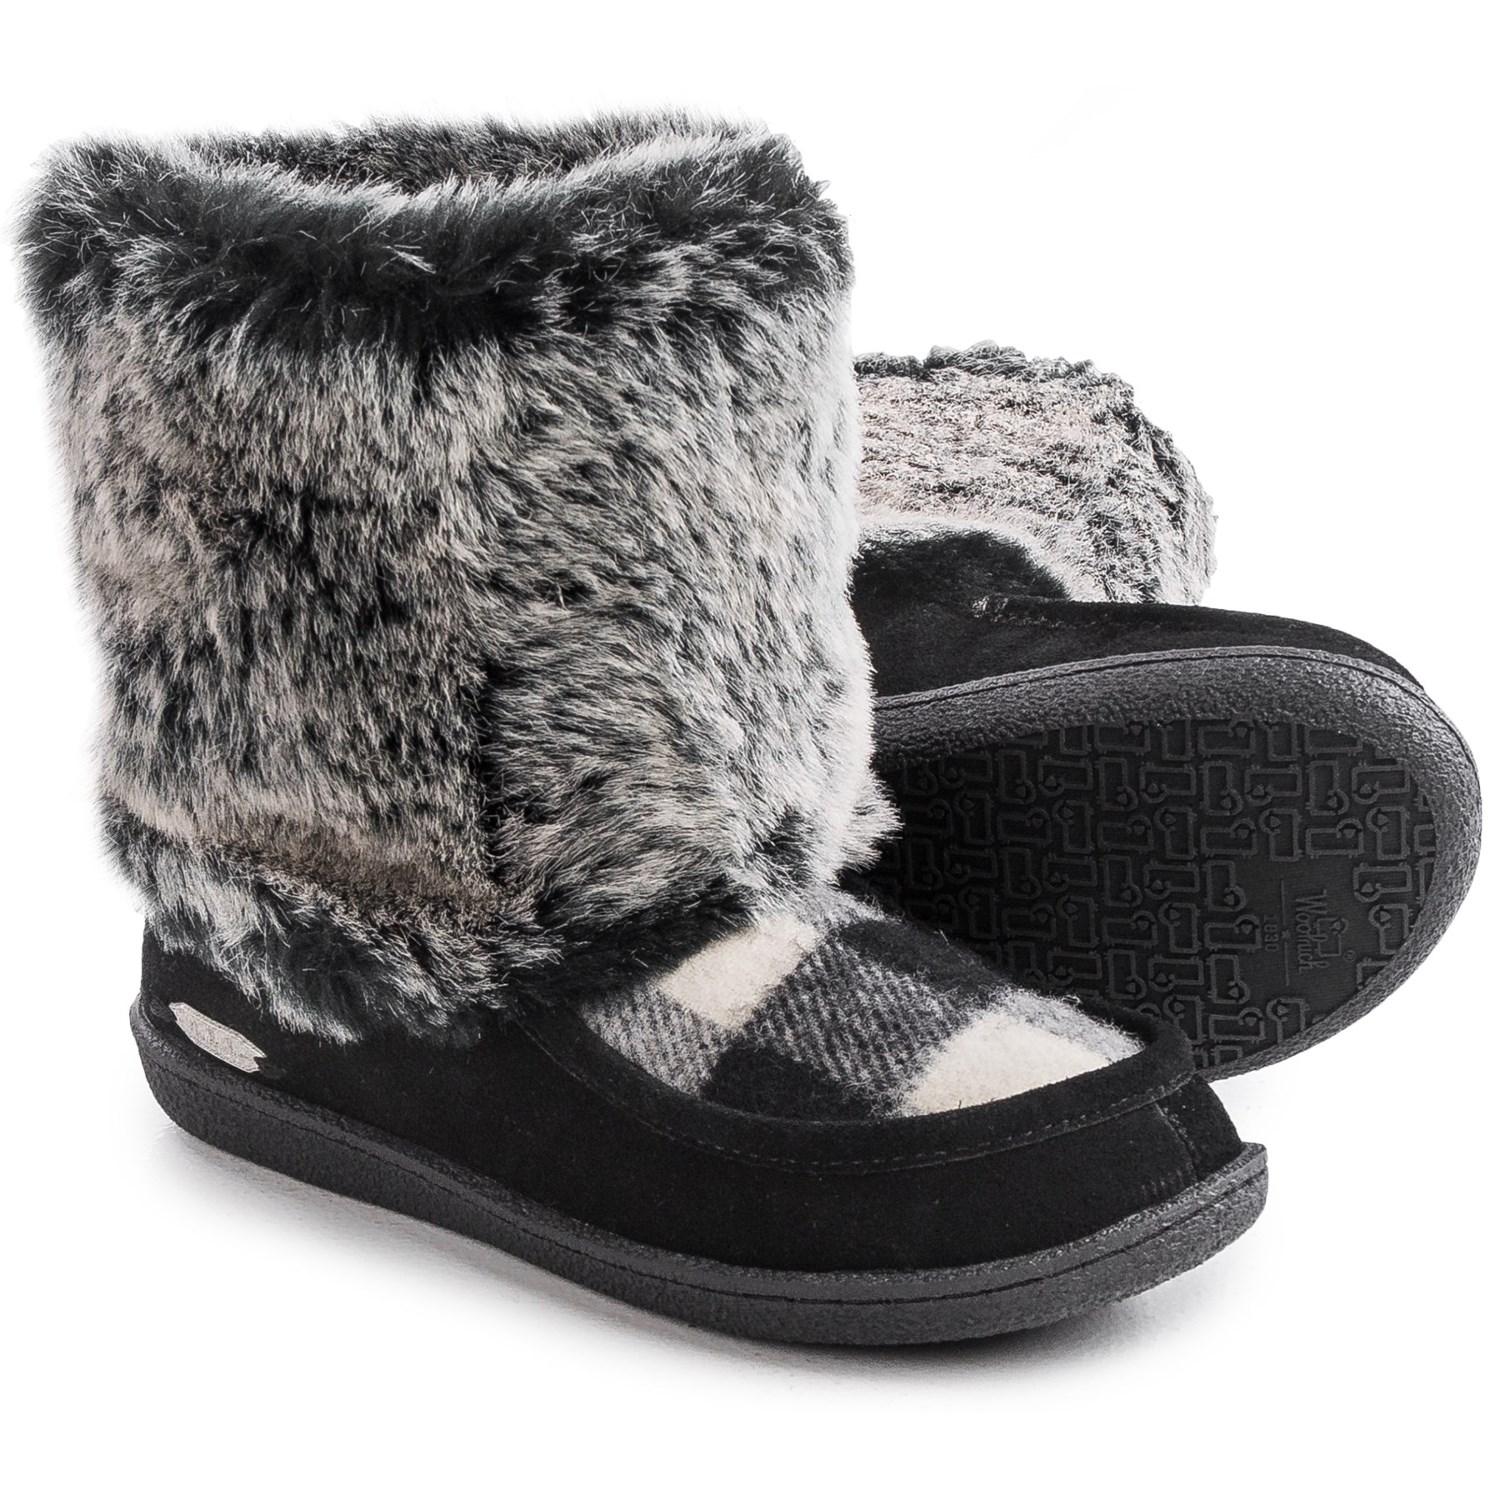 fall creek black single women An easy pull-on style with fashionable faux fur adds a cozy look to the women's fall creek ankle boot from woolrich this woolrich wool and suede boot looks trendy with a black and white plaid woven pattern, while a shaggy faux fur adds a retro touch.